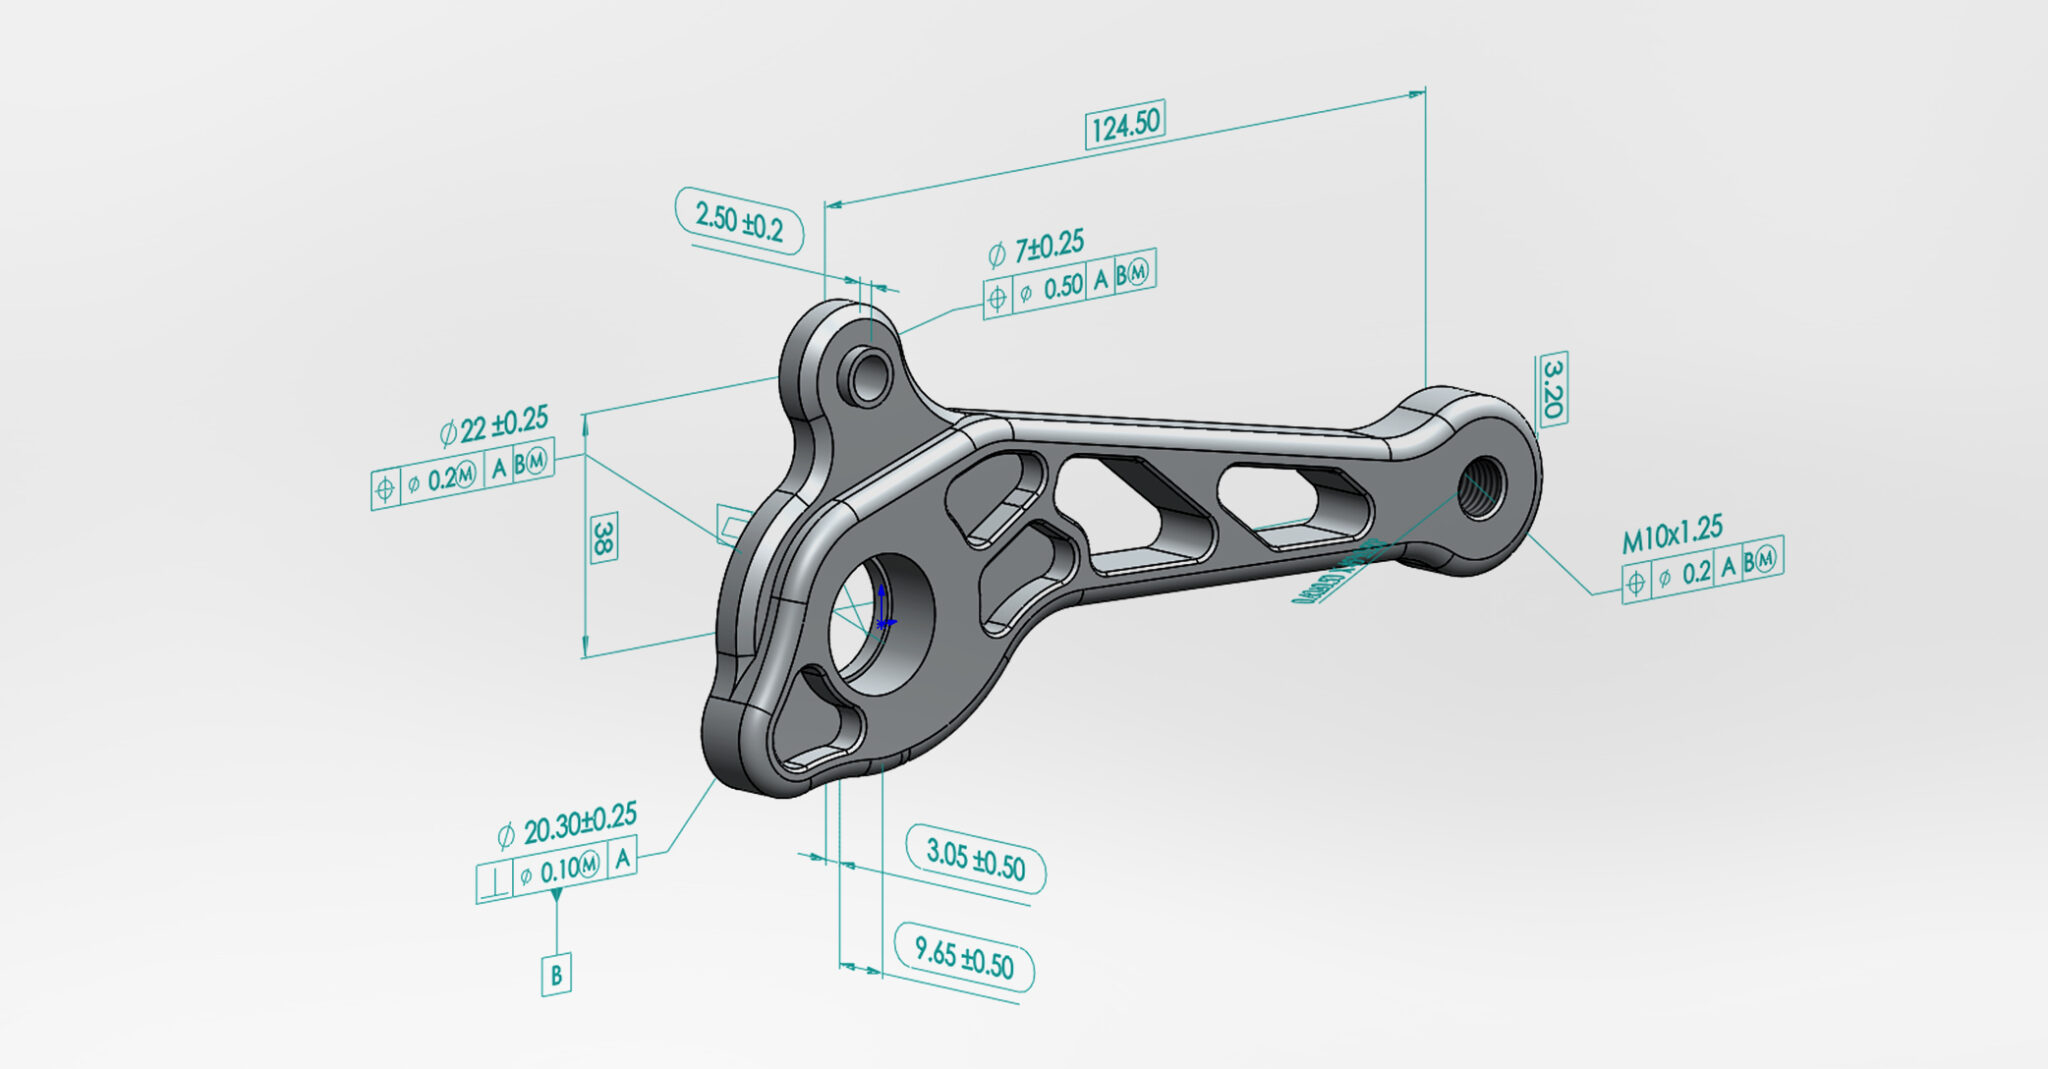 SOLIDWORKS MBD (Model Based Definition)